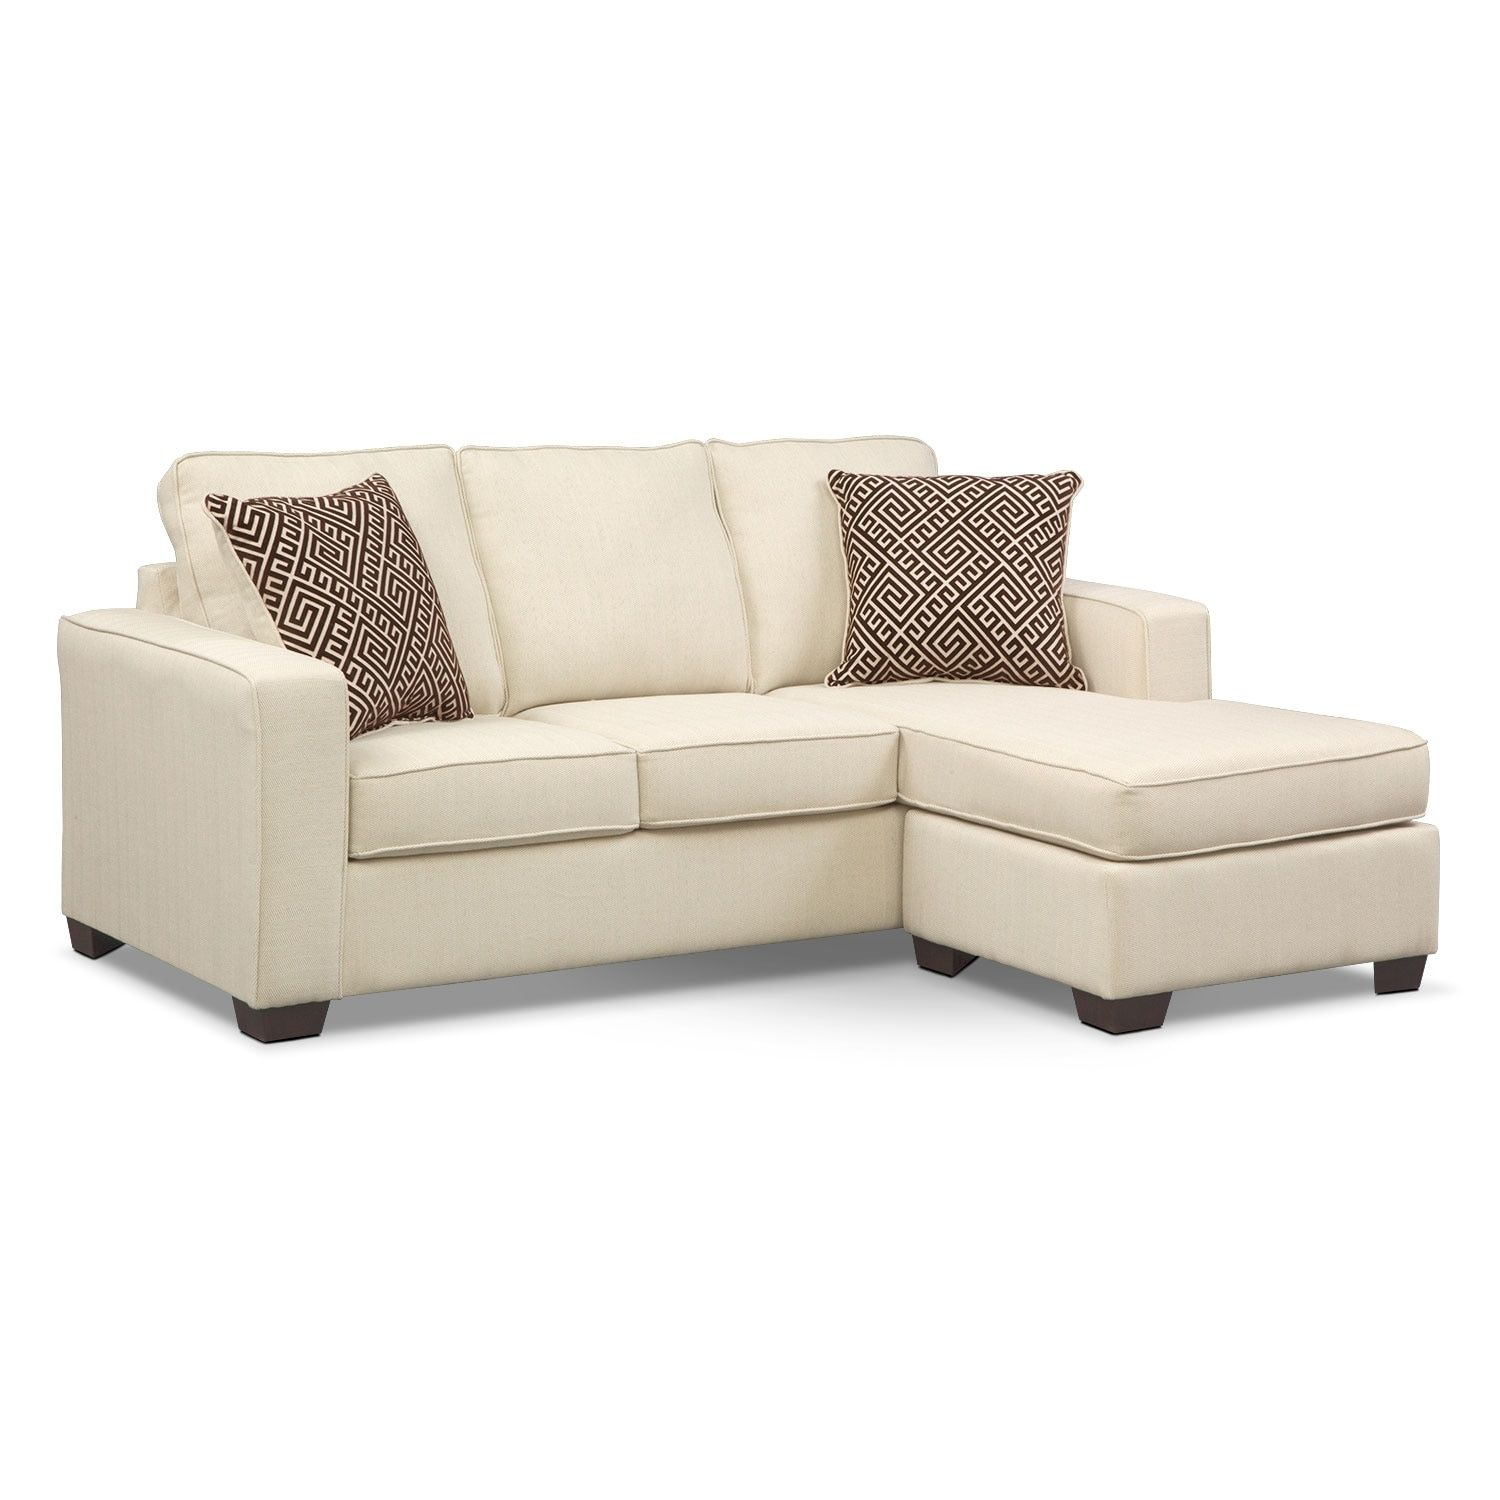 Sterling Memory Foam Sleeper Sofa With Chaise Beige With Images